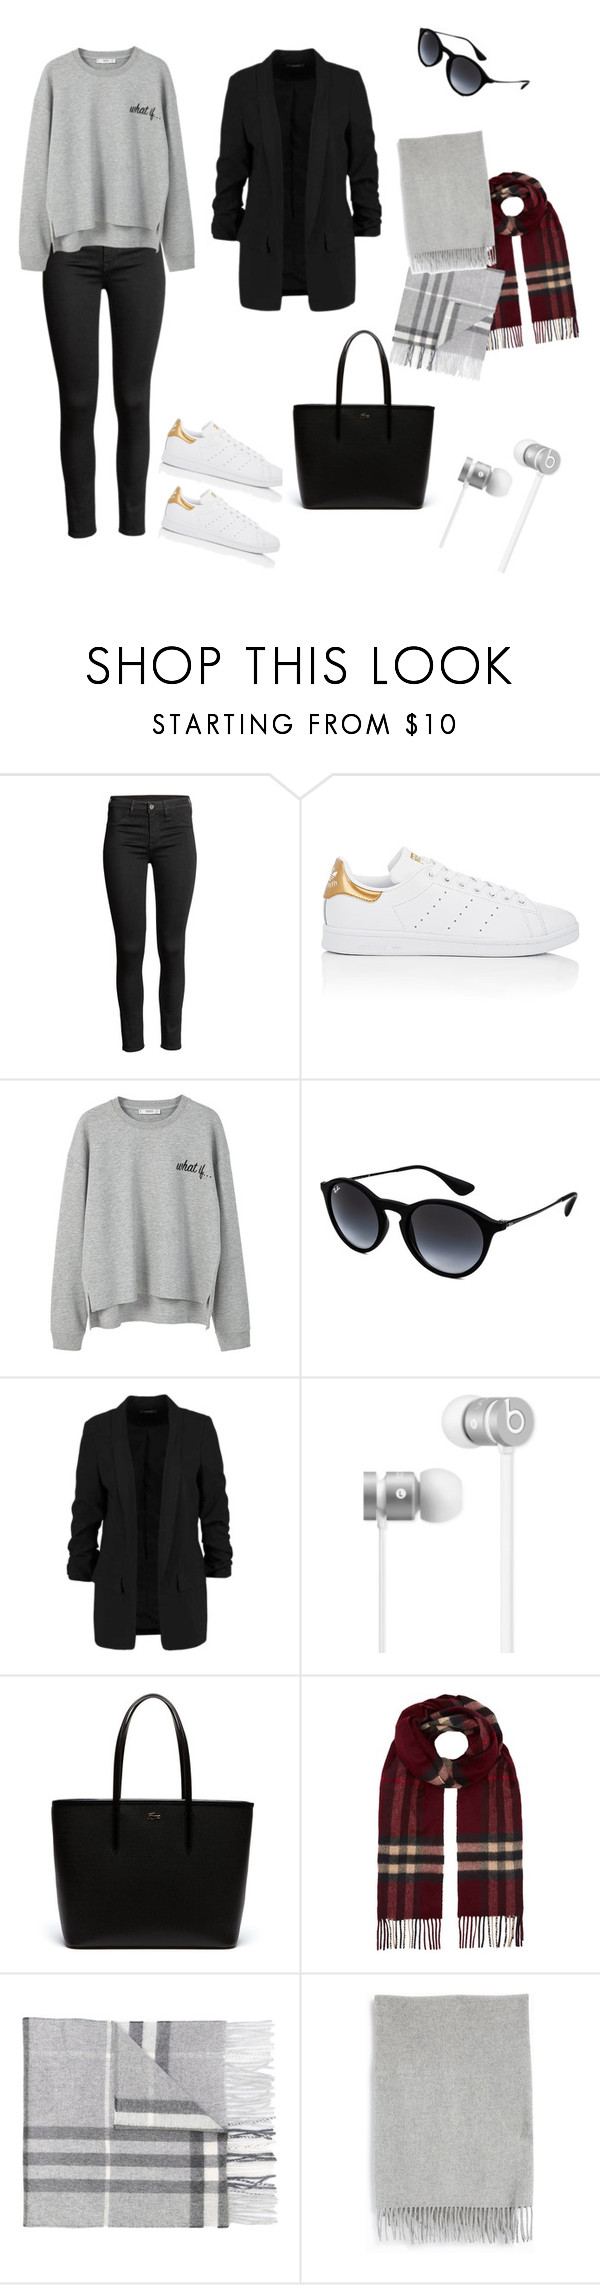 """ED"" by lisamahalkita ❤ liked on Polyvore featuring adidas, MANGO, Ray-Ban, Beats by Dr. Dre, Lacoste, Burberry and Acne Studios"